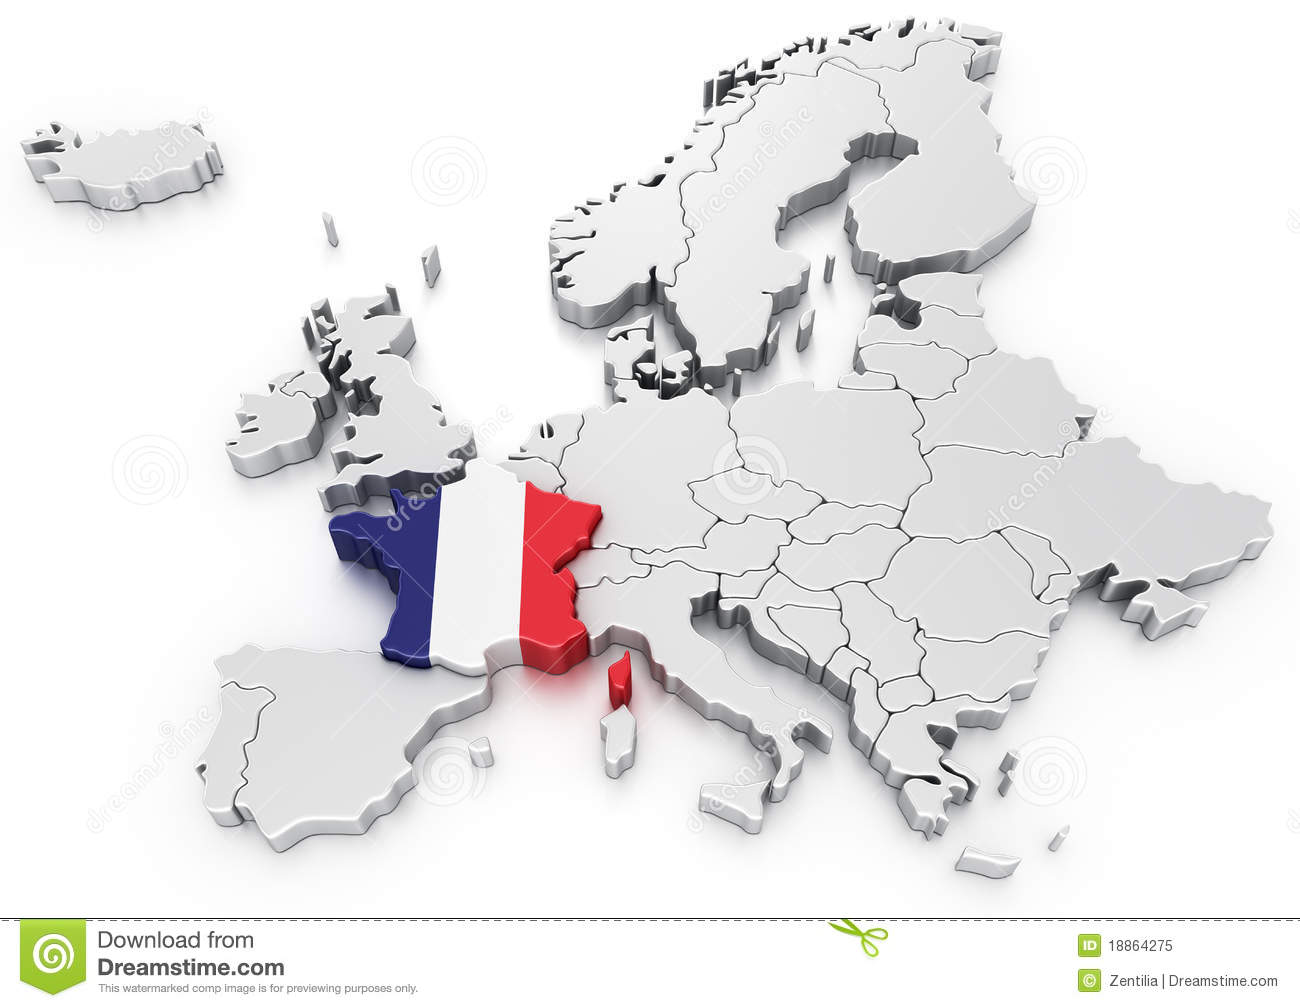 France On A Map Of Europe.France On A Euro Map Stock Illustration Illustration Of Europe